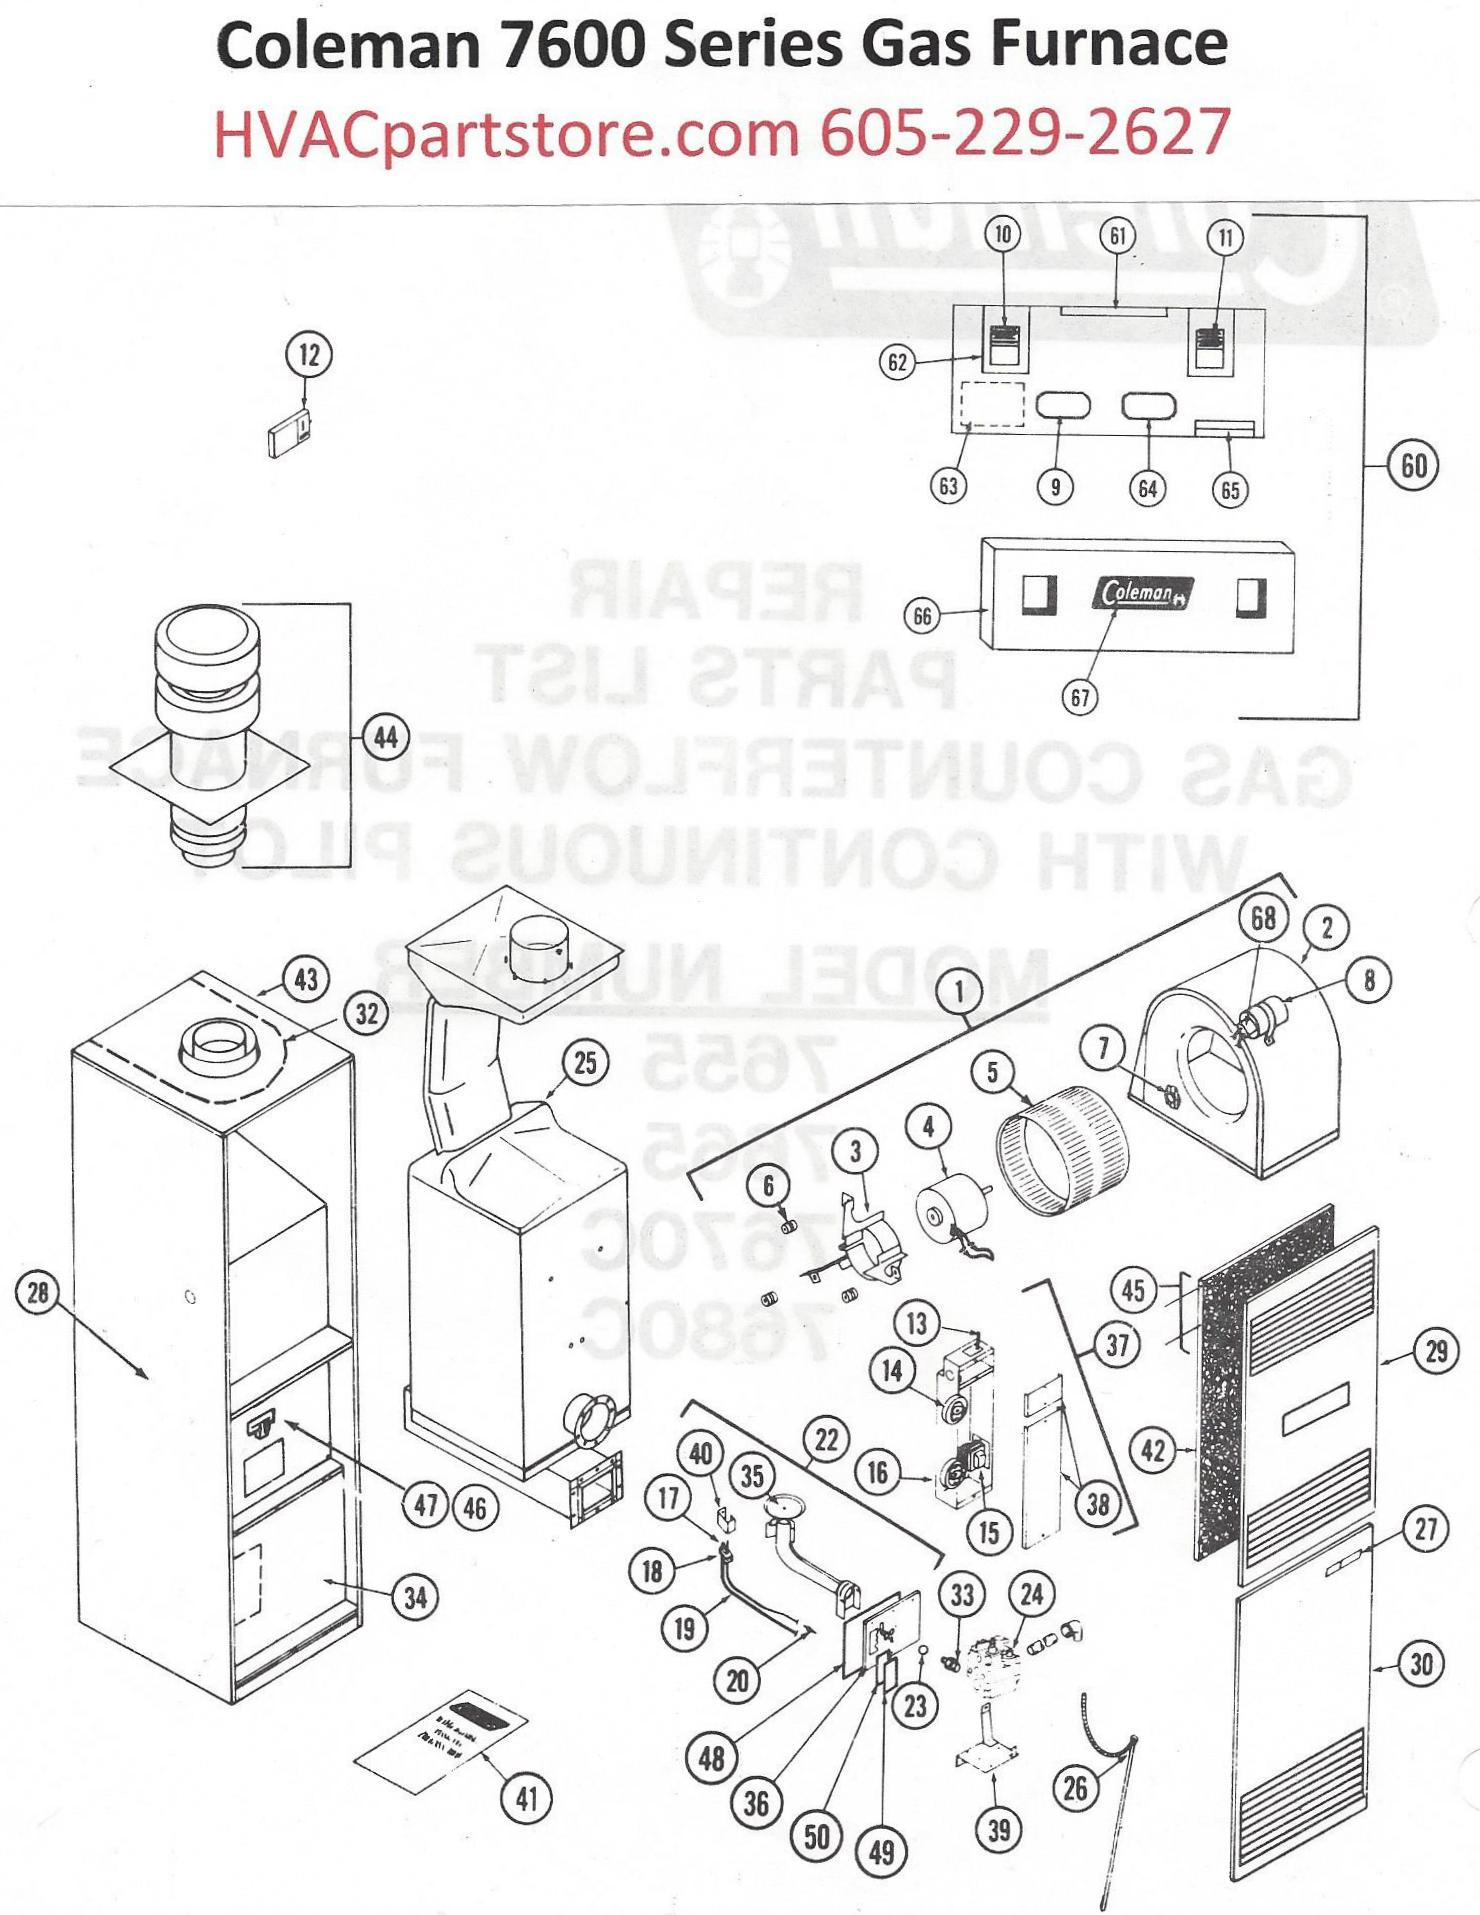 Propane Furnace Schematic Wiring Diagram For Modest Proposal Answers